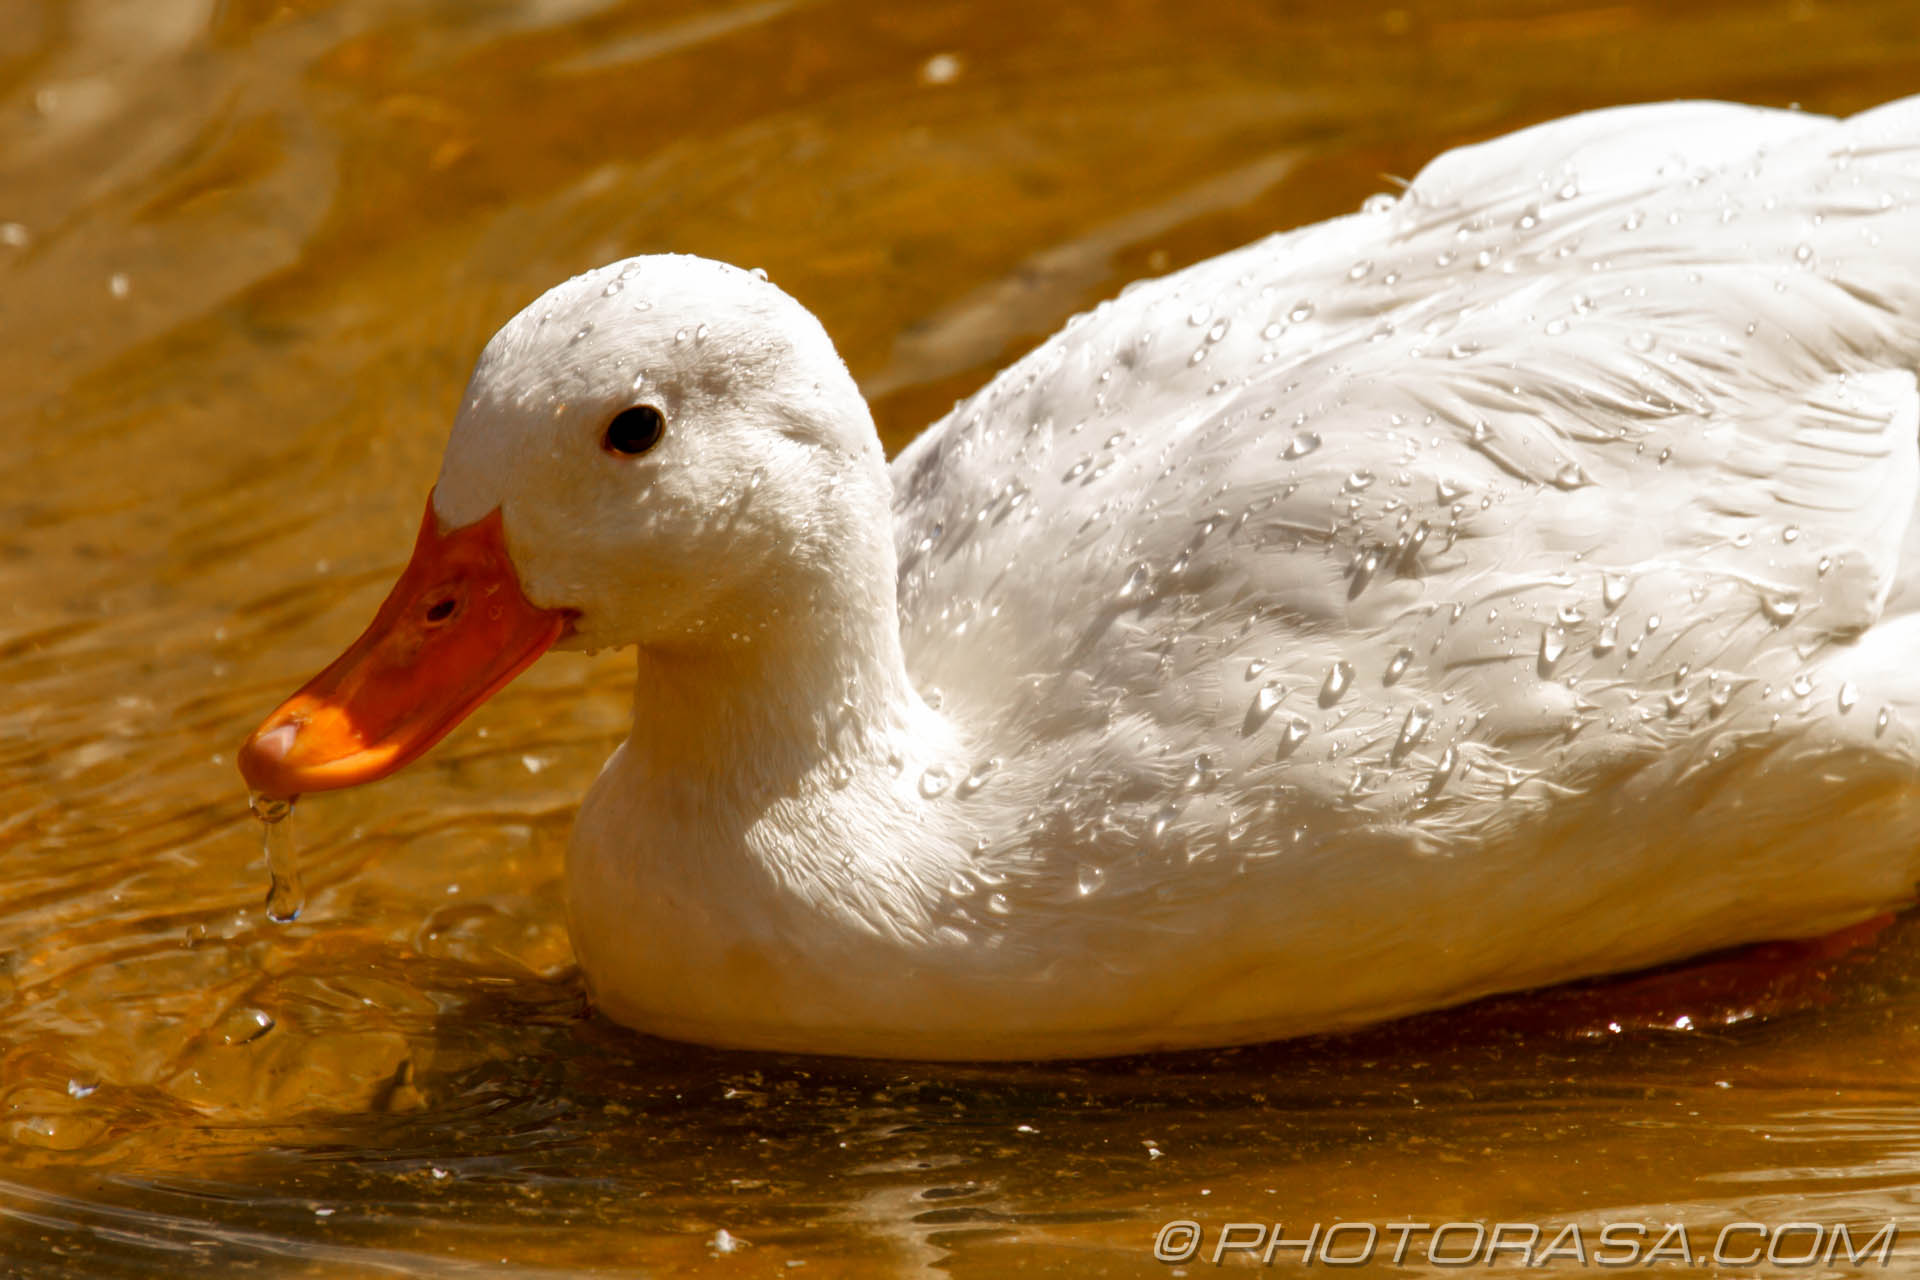 https://photorasa.com/birds-greenworld/white-duck-and-water-droplets/